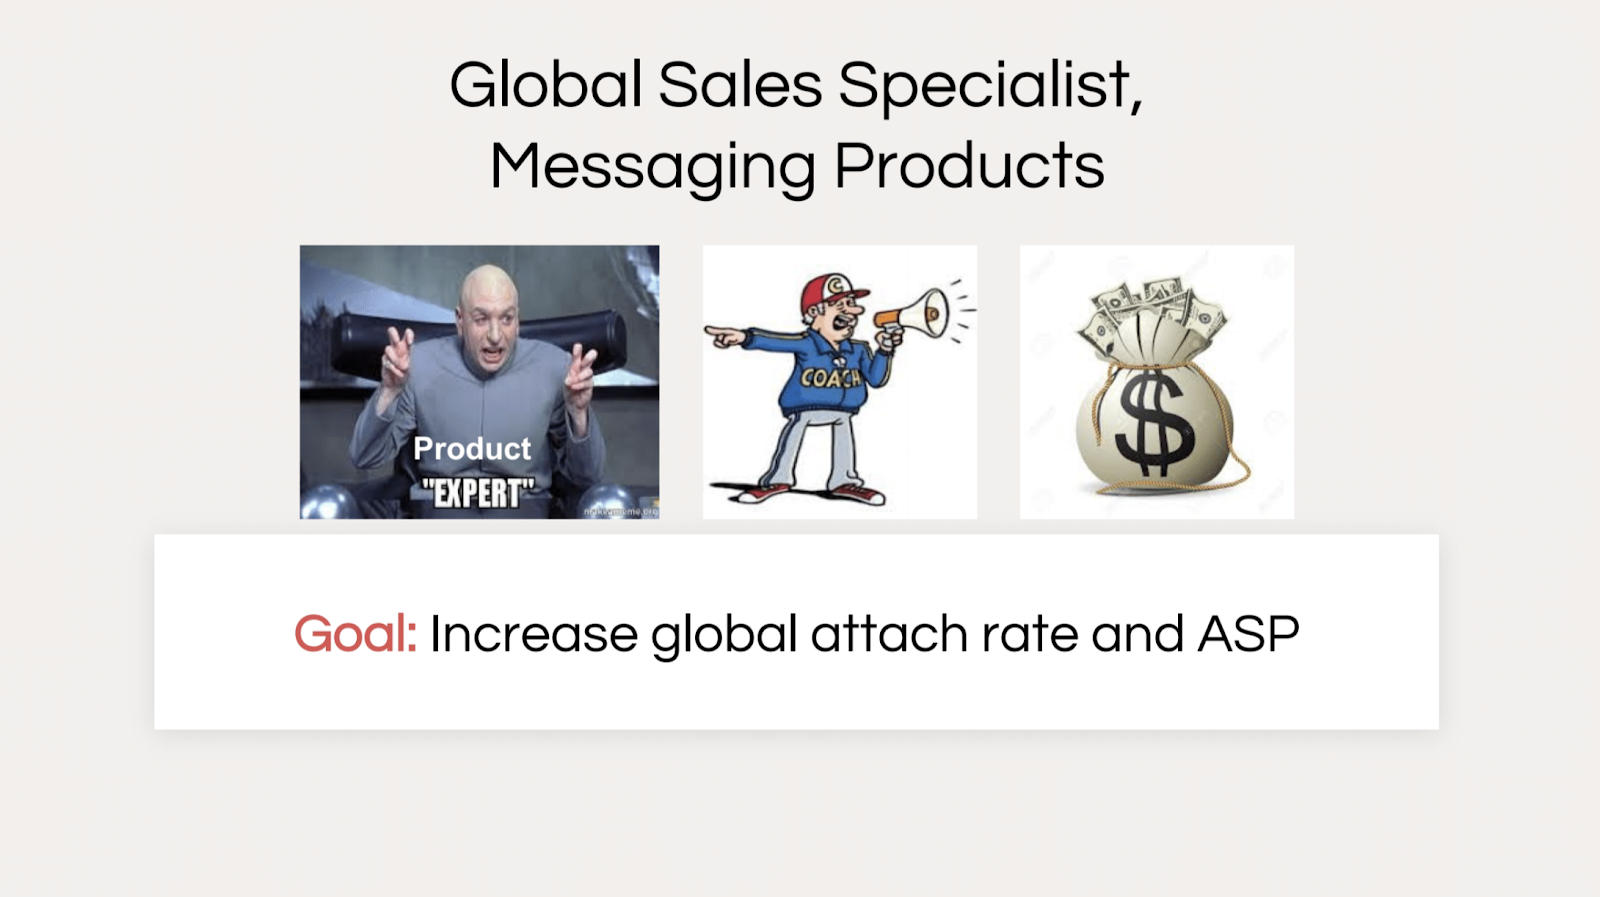 goal: increase global attach rate and ASP